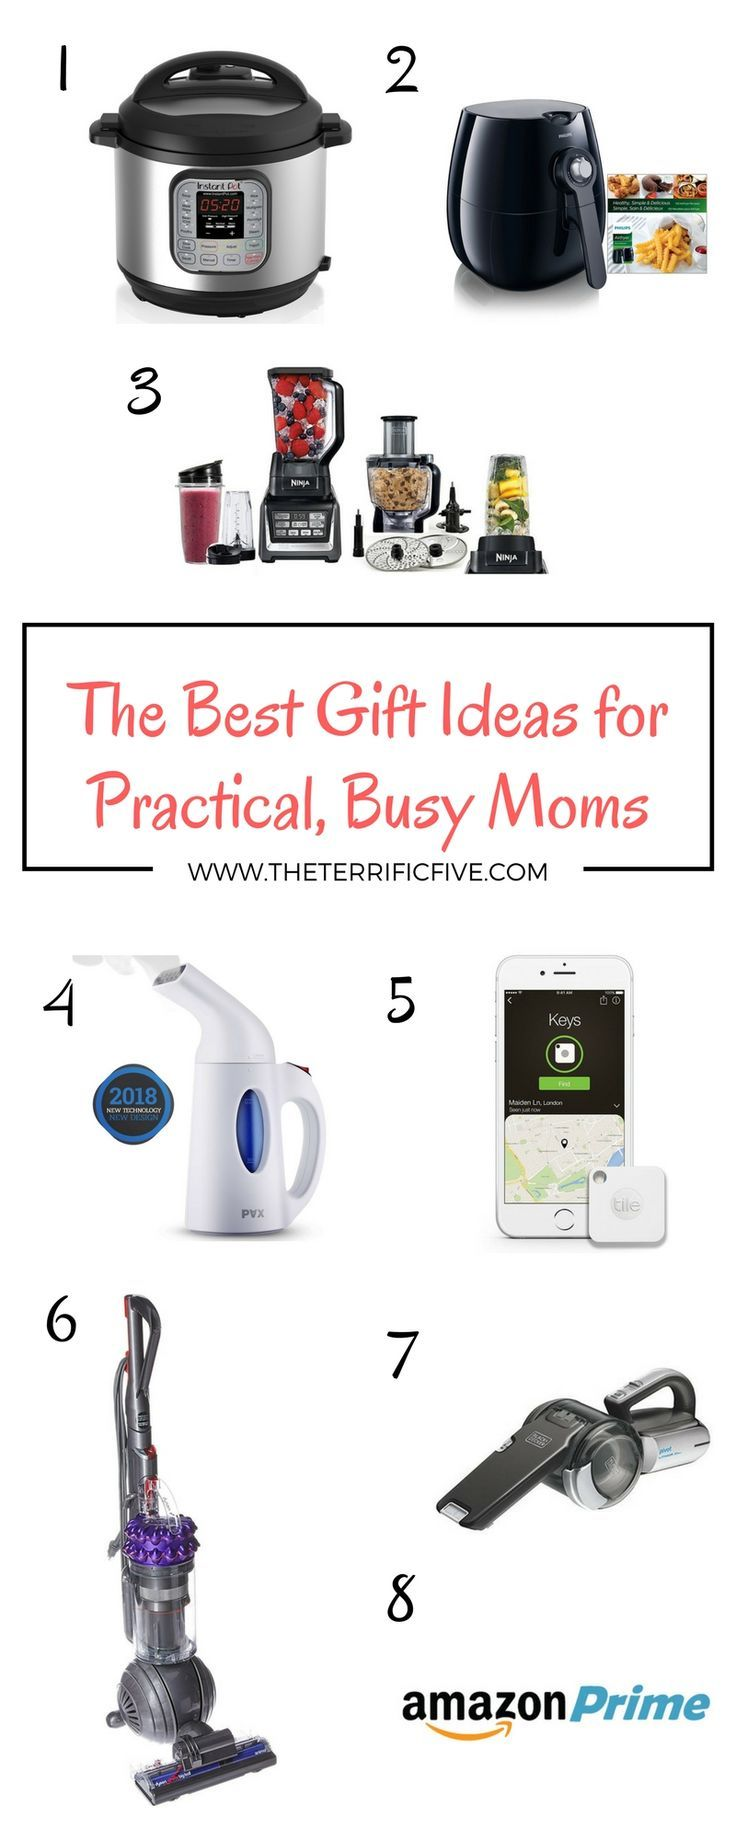 The Best Gift Ideas for Practical, Busy Moms | Christmas Gift for Mom | Valentine's Gift for Mom | Ultimate Gift Guide for Mom | www.theterrificfive.com